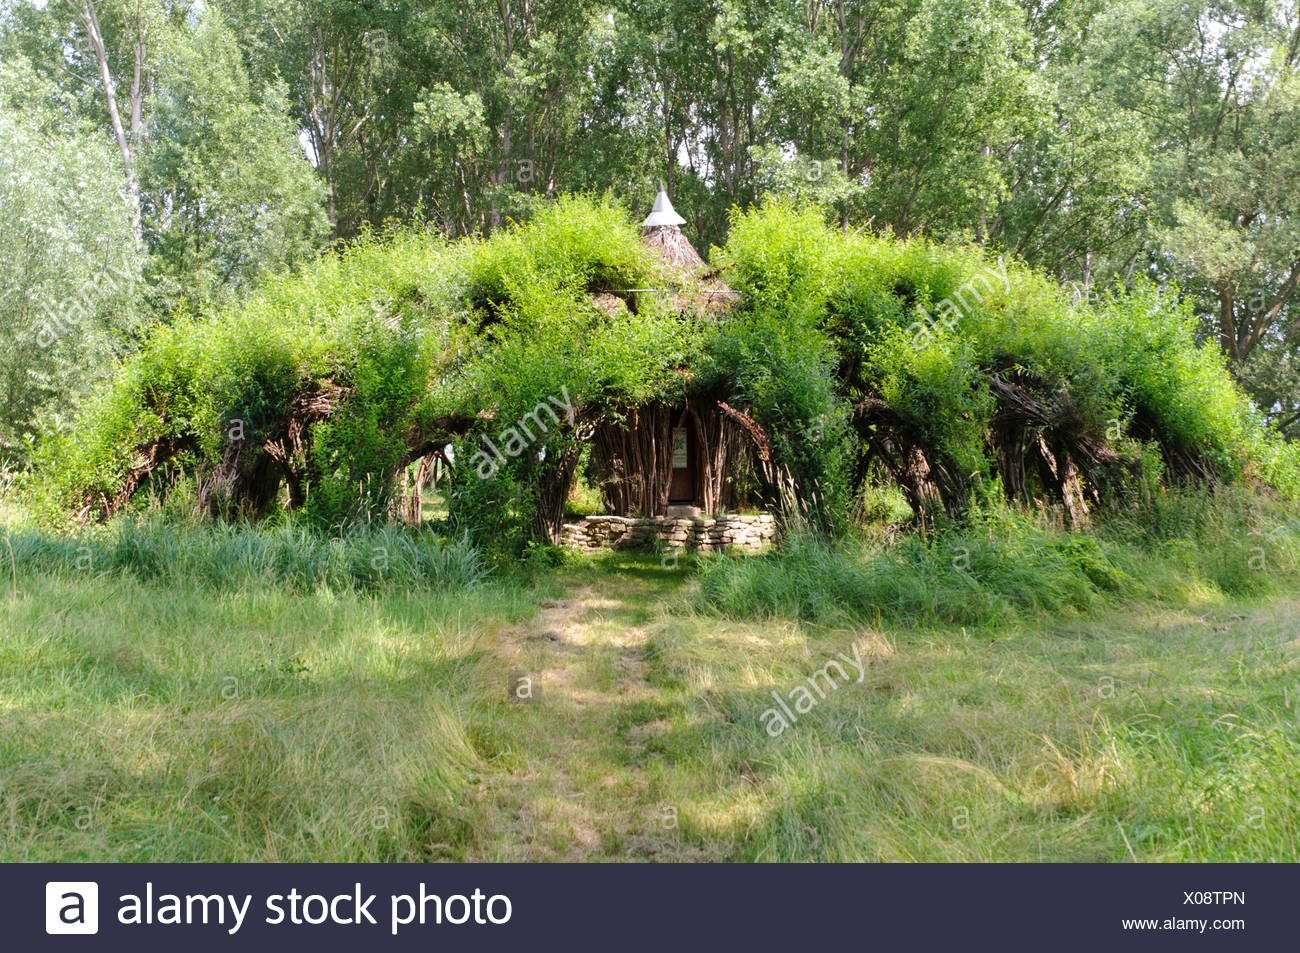 Auerworldpalast, pastures, rods, palace, Marcel Kalberer, Auerstedt, Thuringia, Germany, Europe, pastures, willows, Salix, roof, - Stock Image